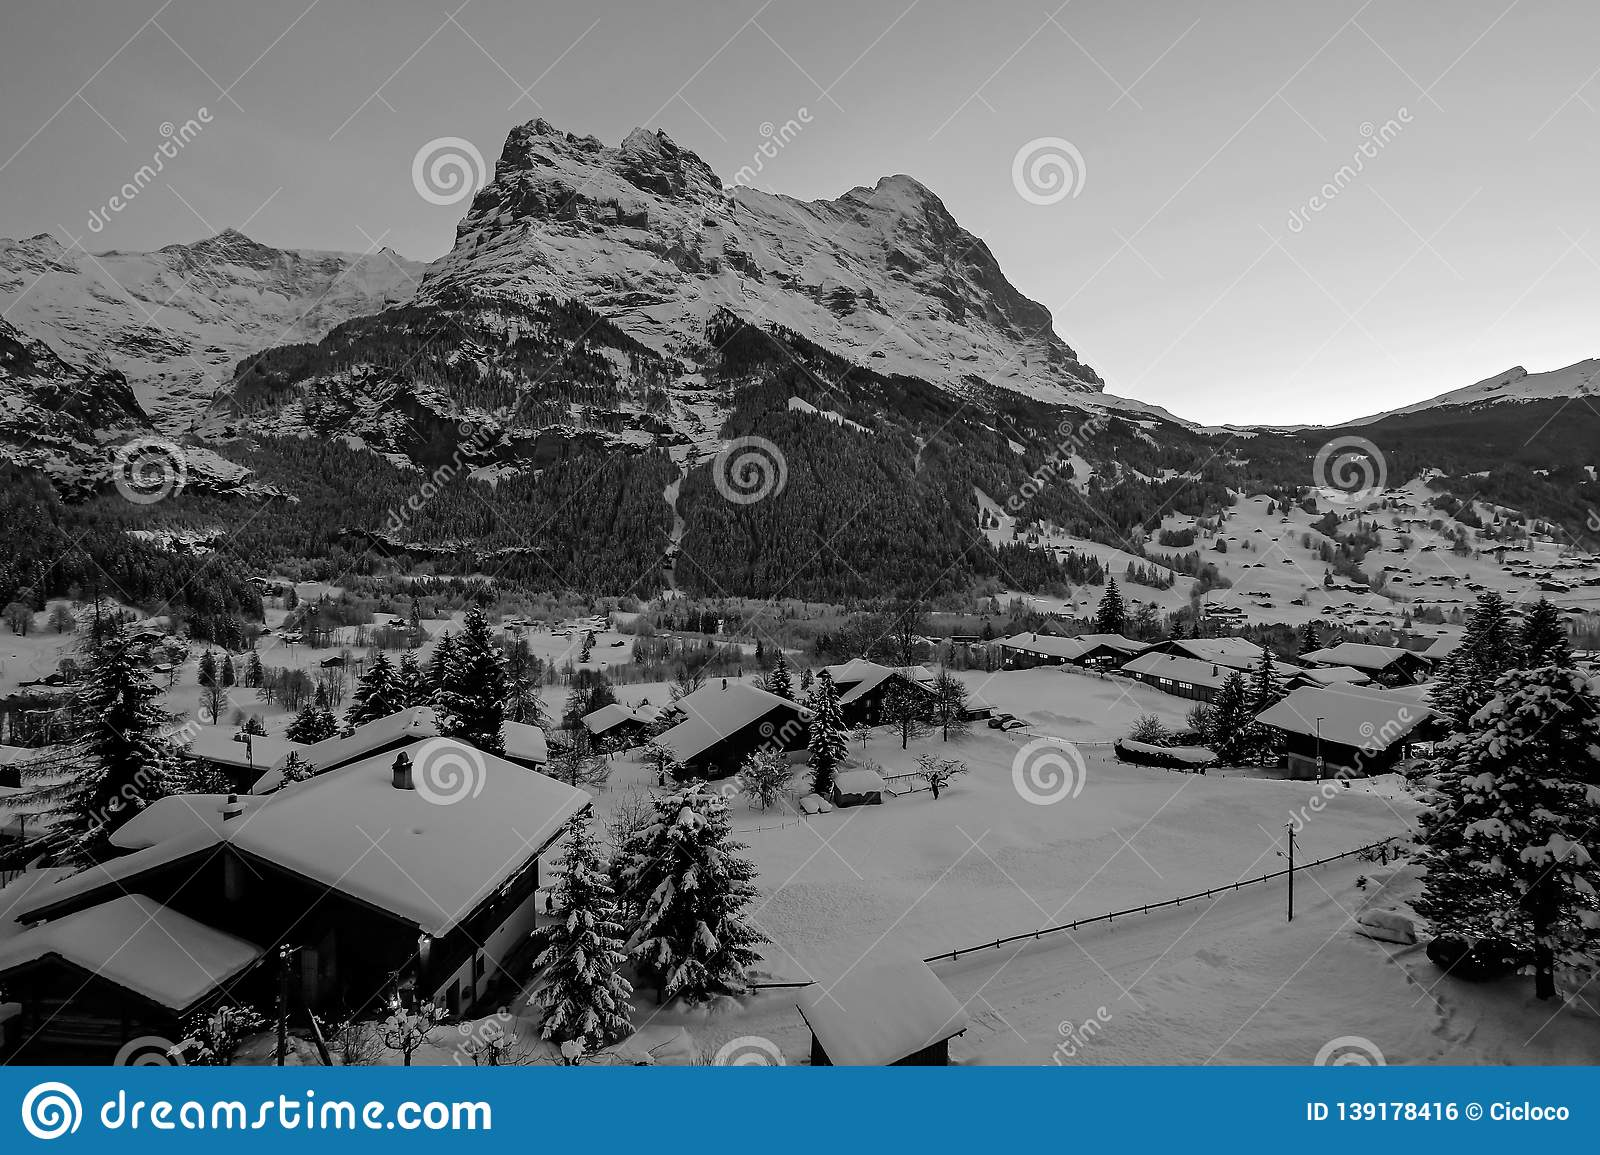 Grindelwald village at dusk with Mt. Eiger peak, snow covered landscape in winter, black white photography, Switzerland